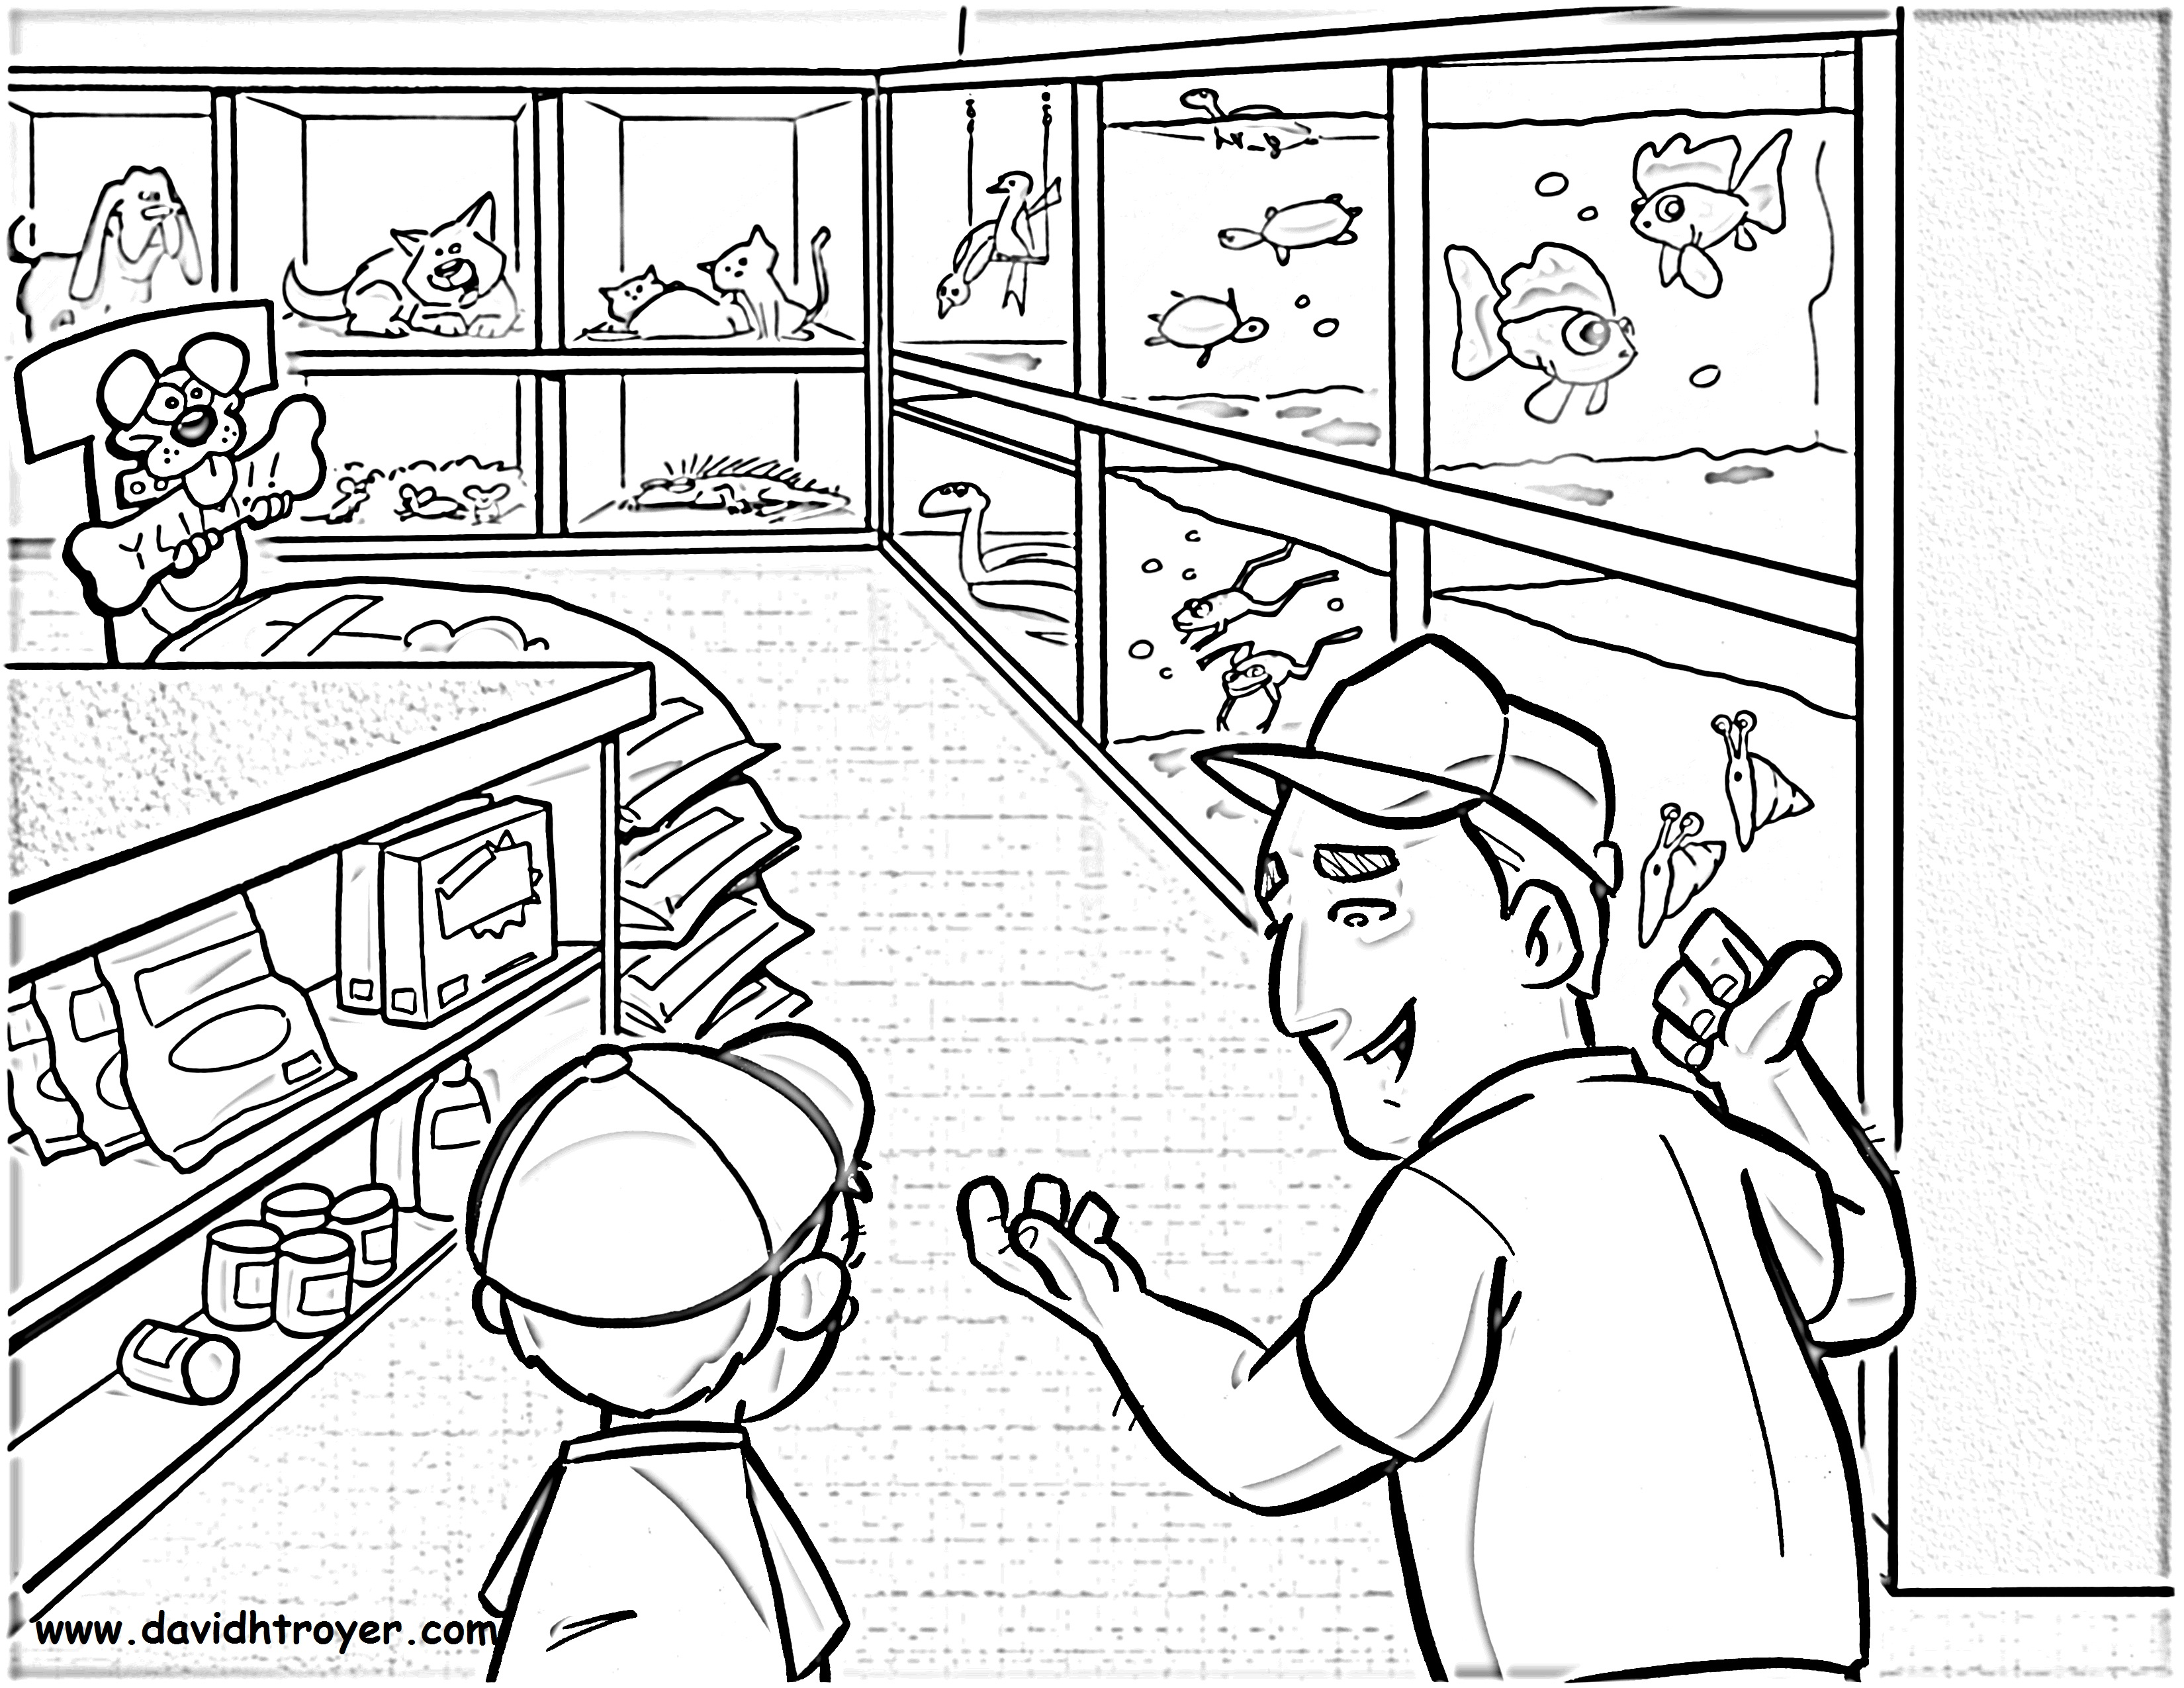 coloring pages stores - photo#8